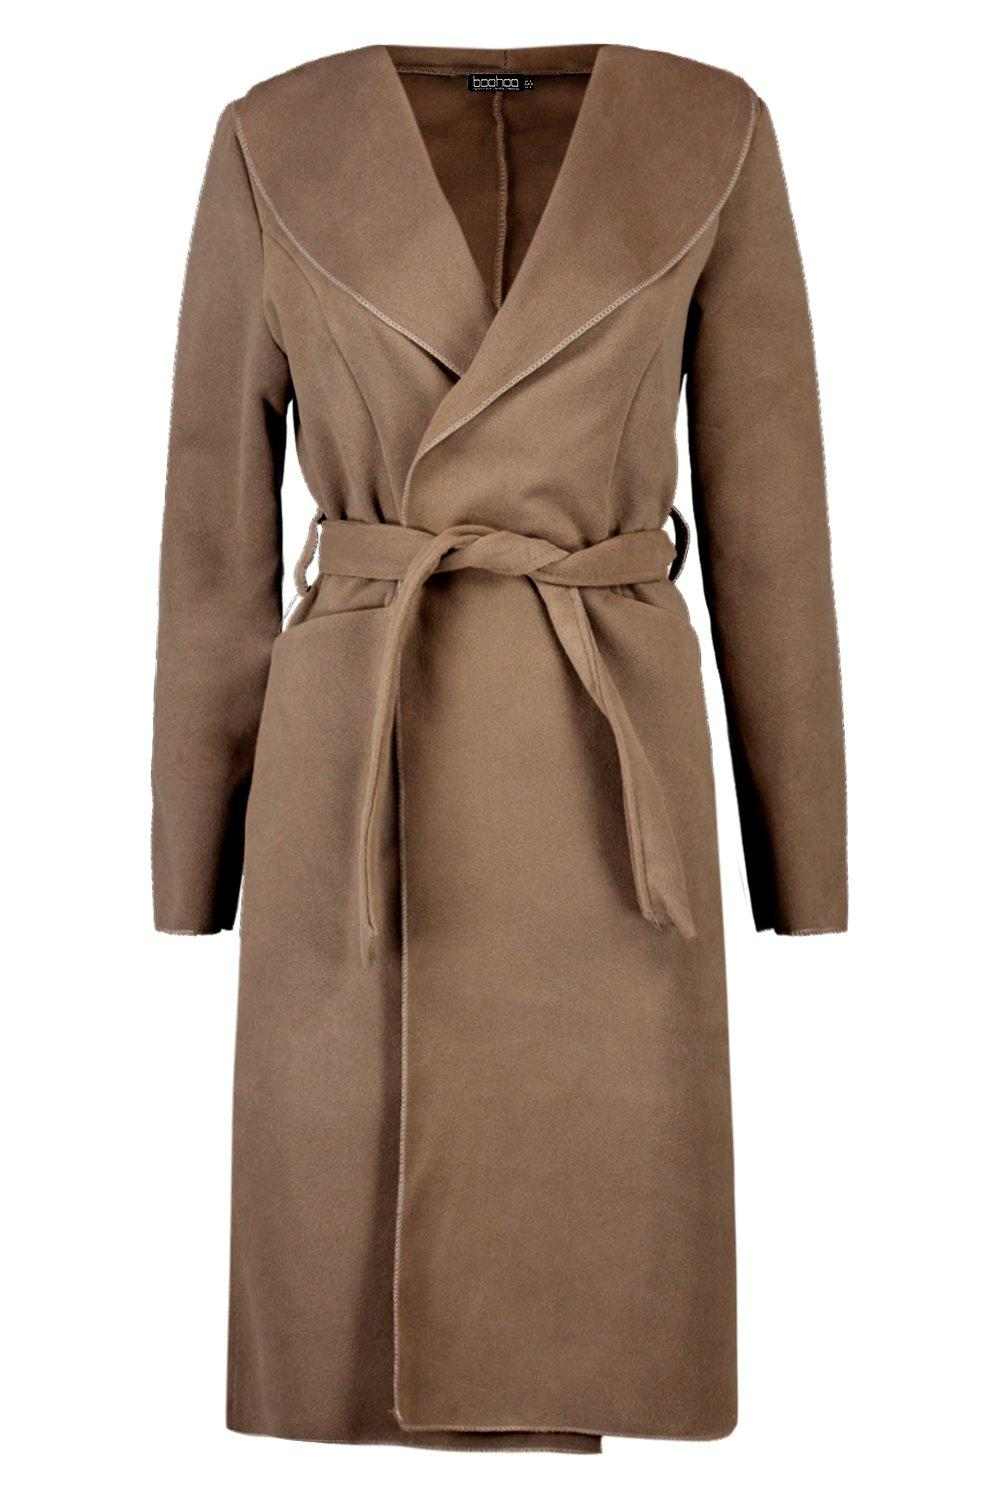 Collar Selecciona Shawl Coat Wool Belted Look TxzZtAnX